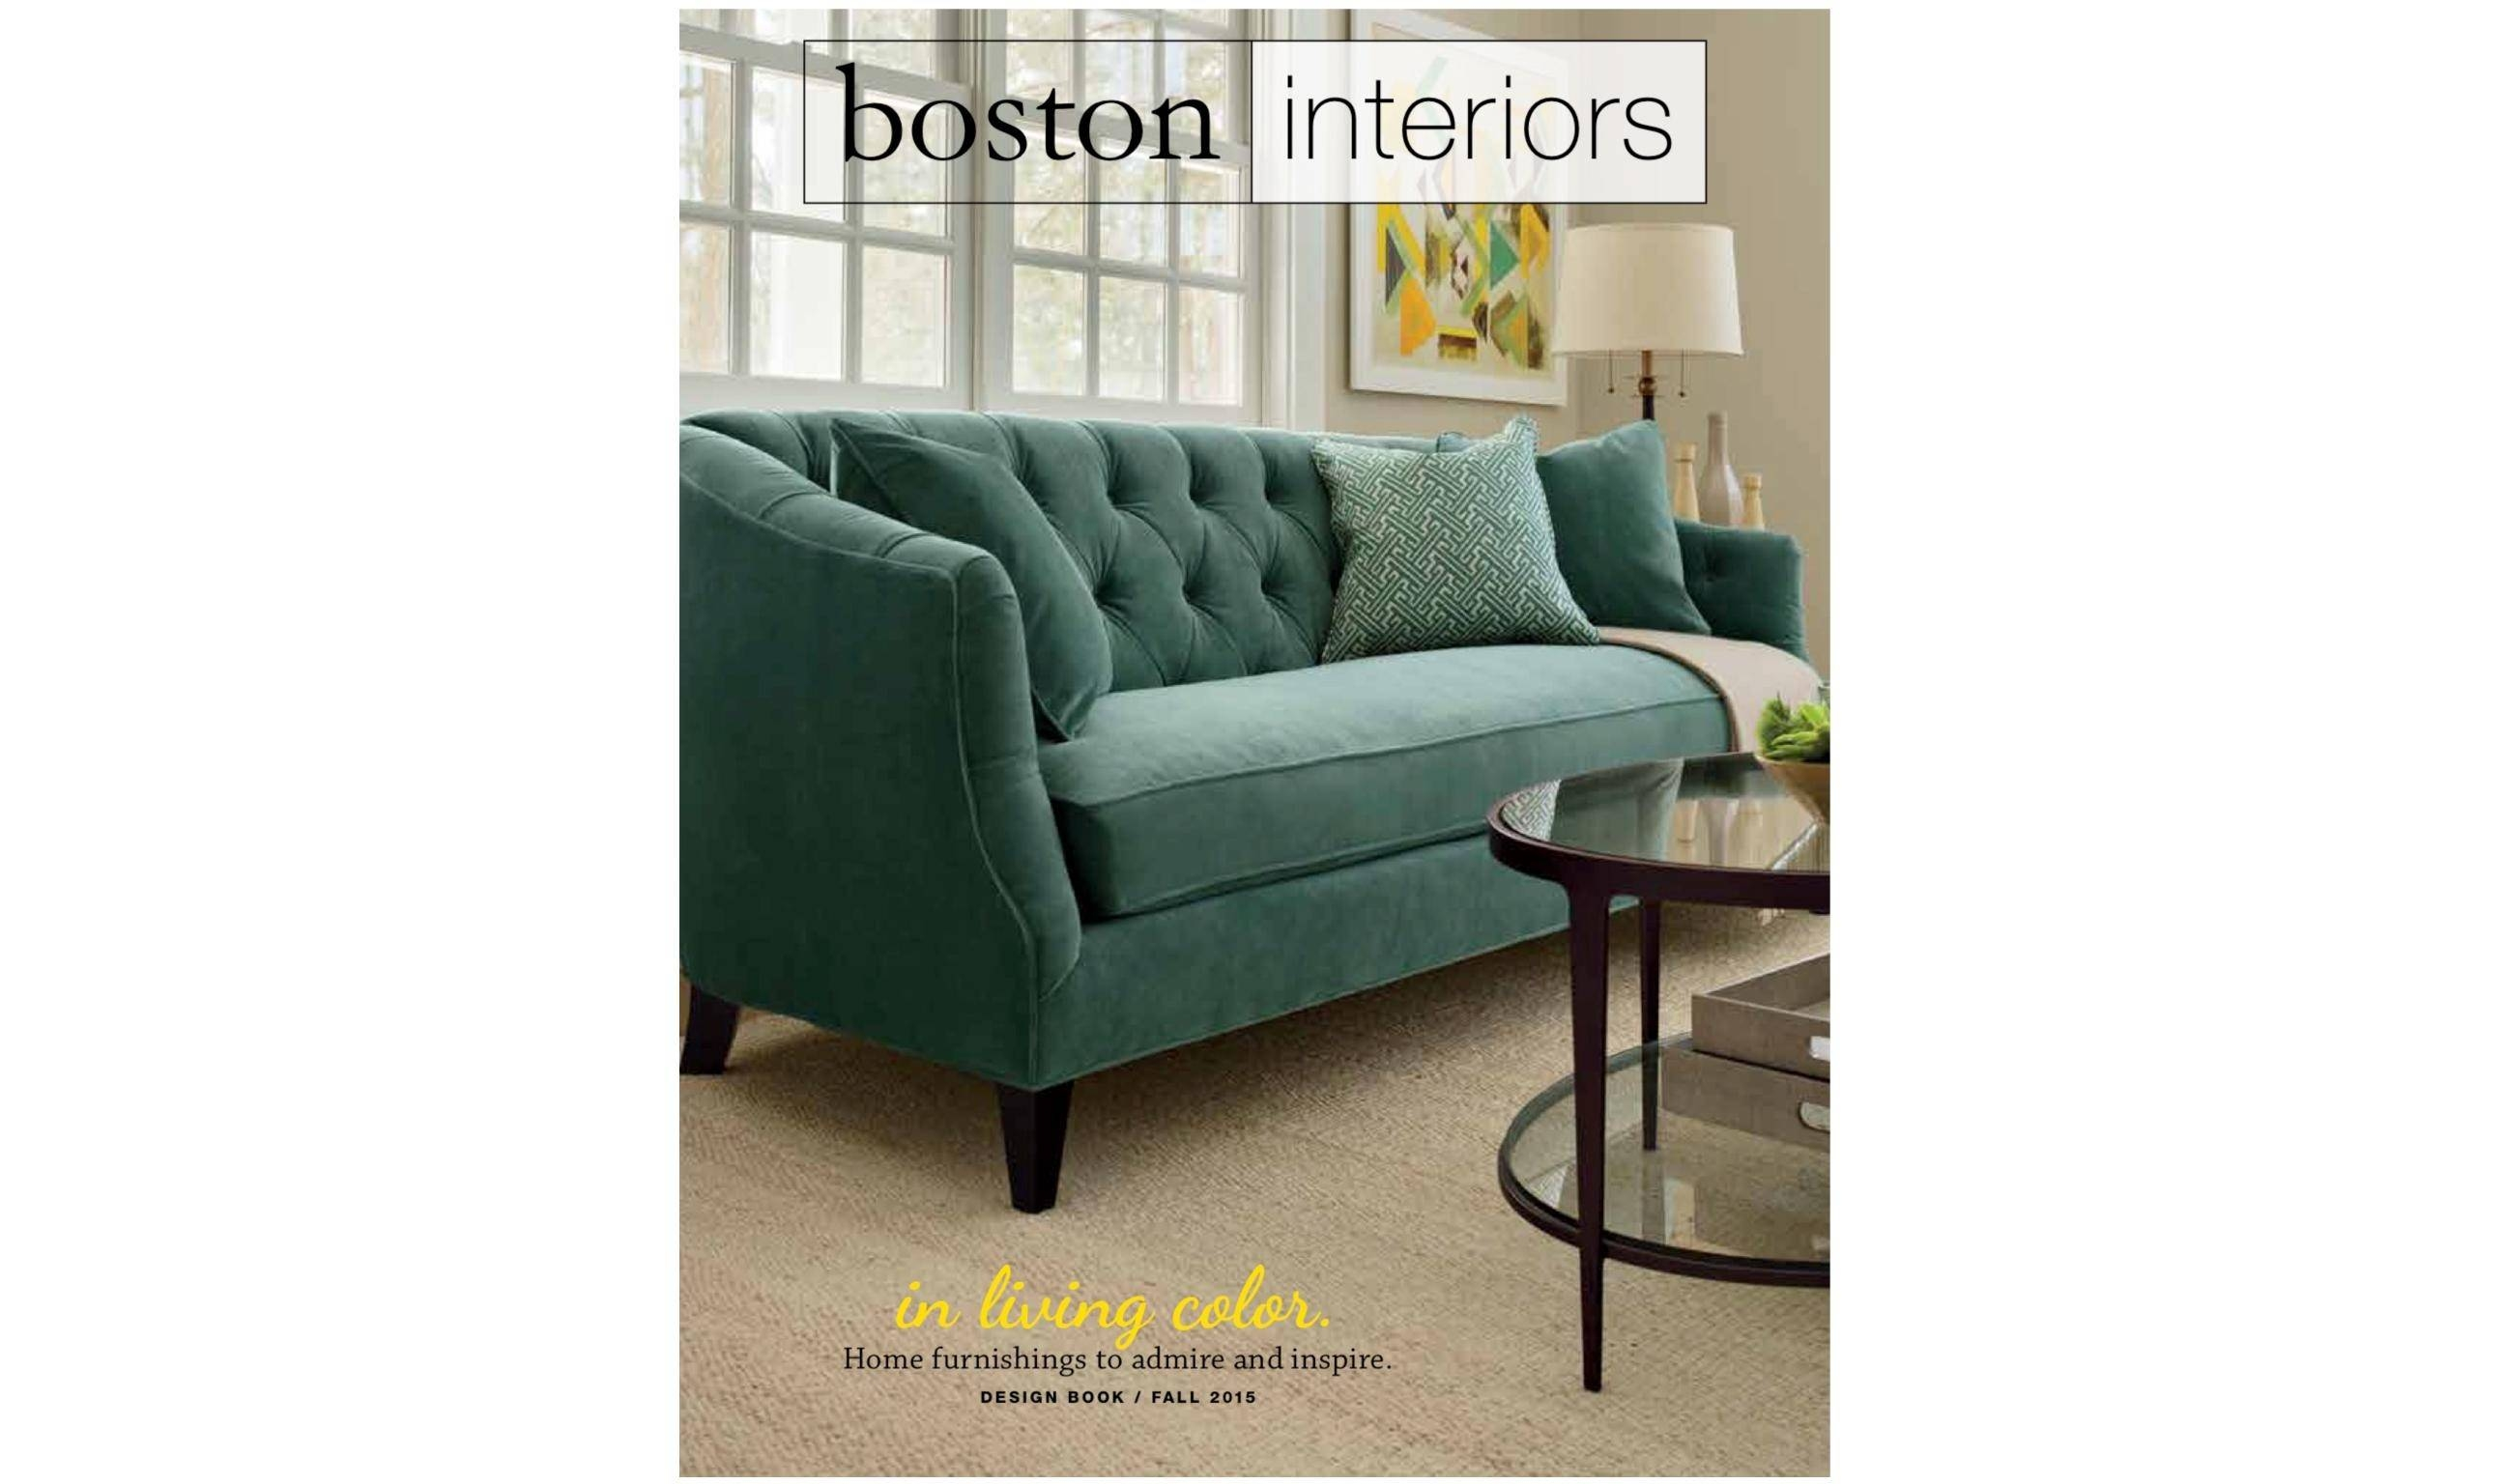 20 Top Boston Interiors Sofas | Sofa Ideas inside Boston Interiors Sofas (Image 2 of 15)